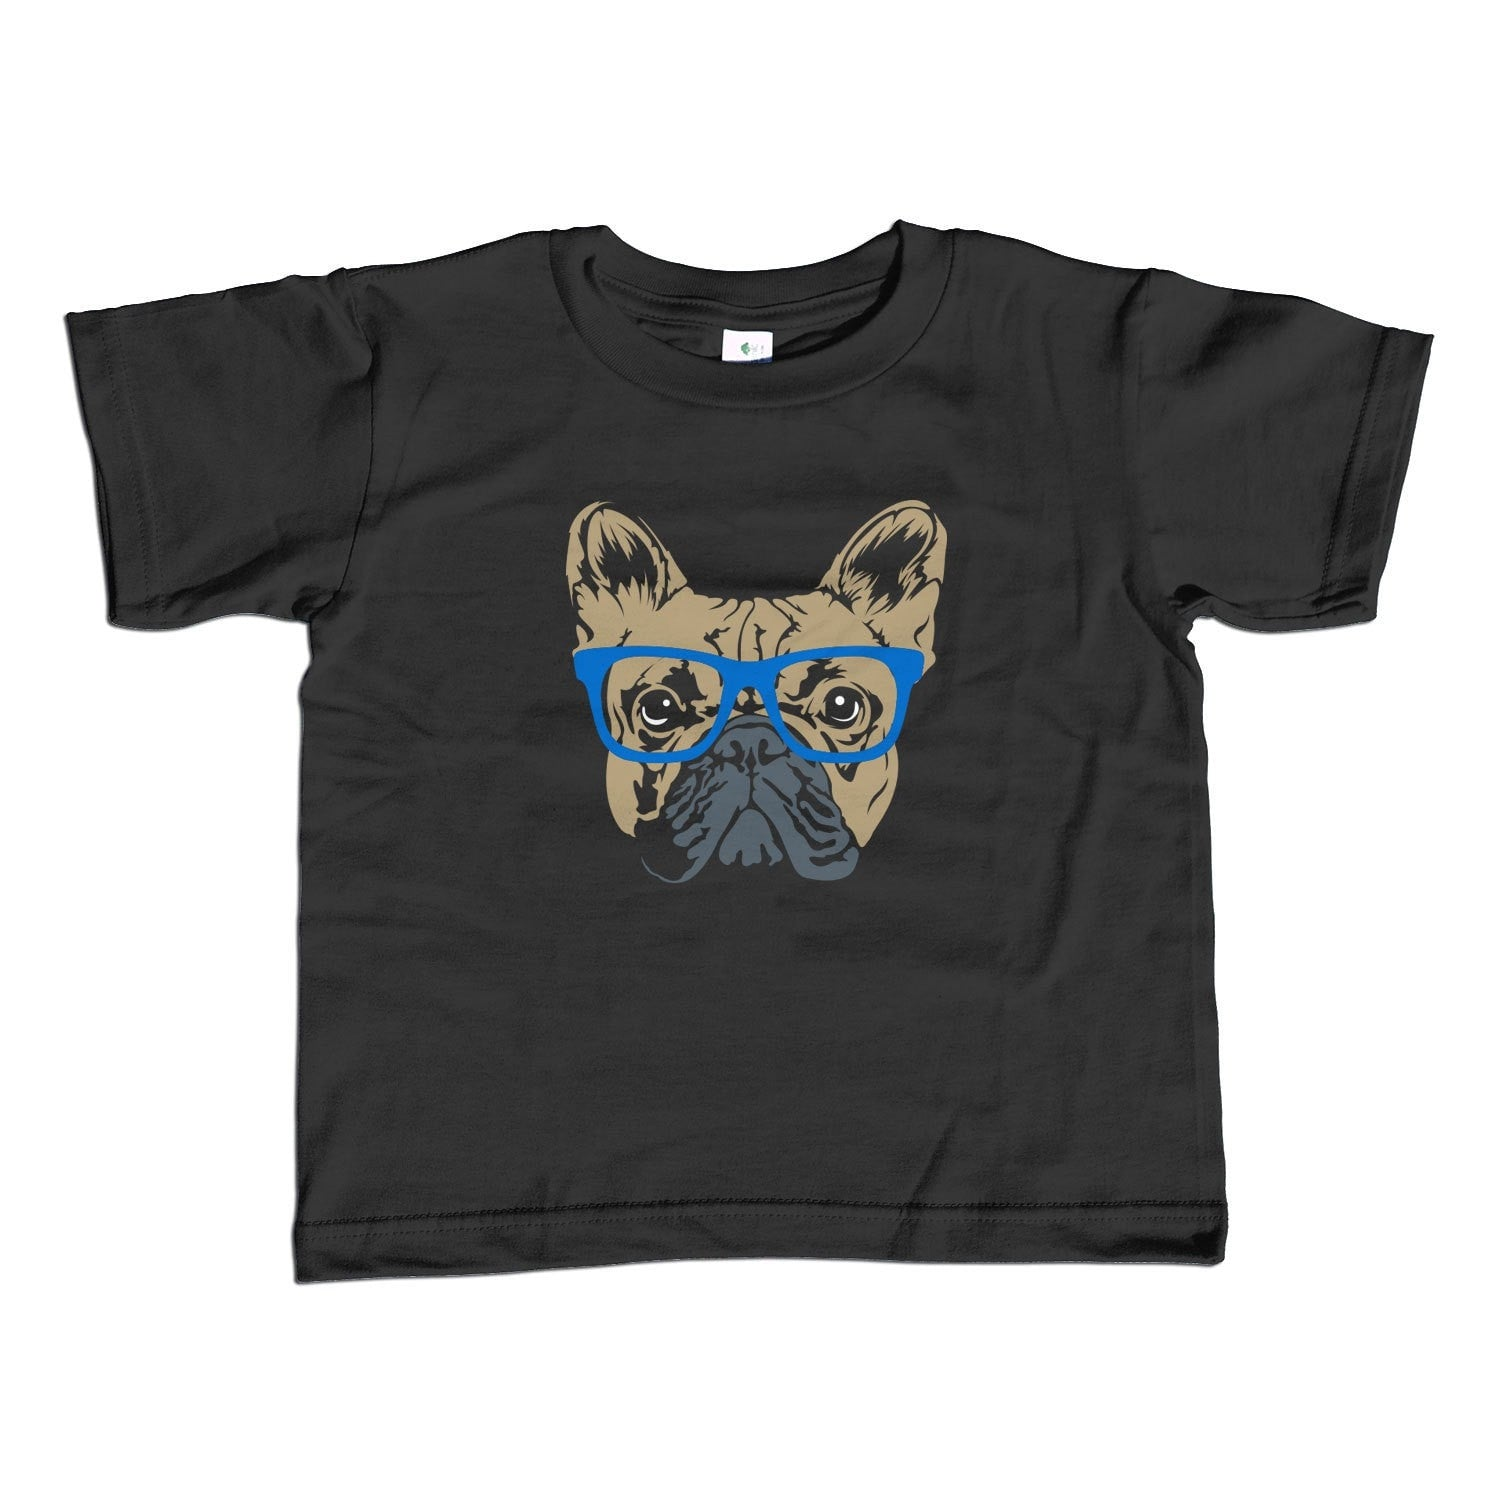 Boy's Glasses on a French Bulldog T-Shirt Hipster Frenchie